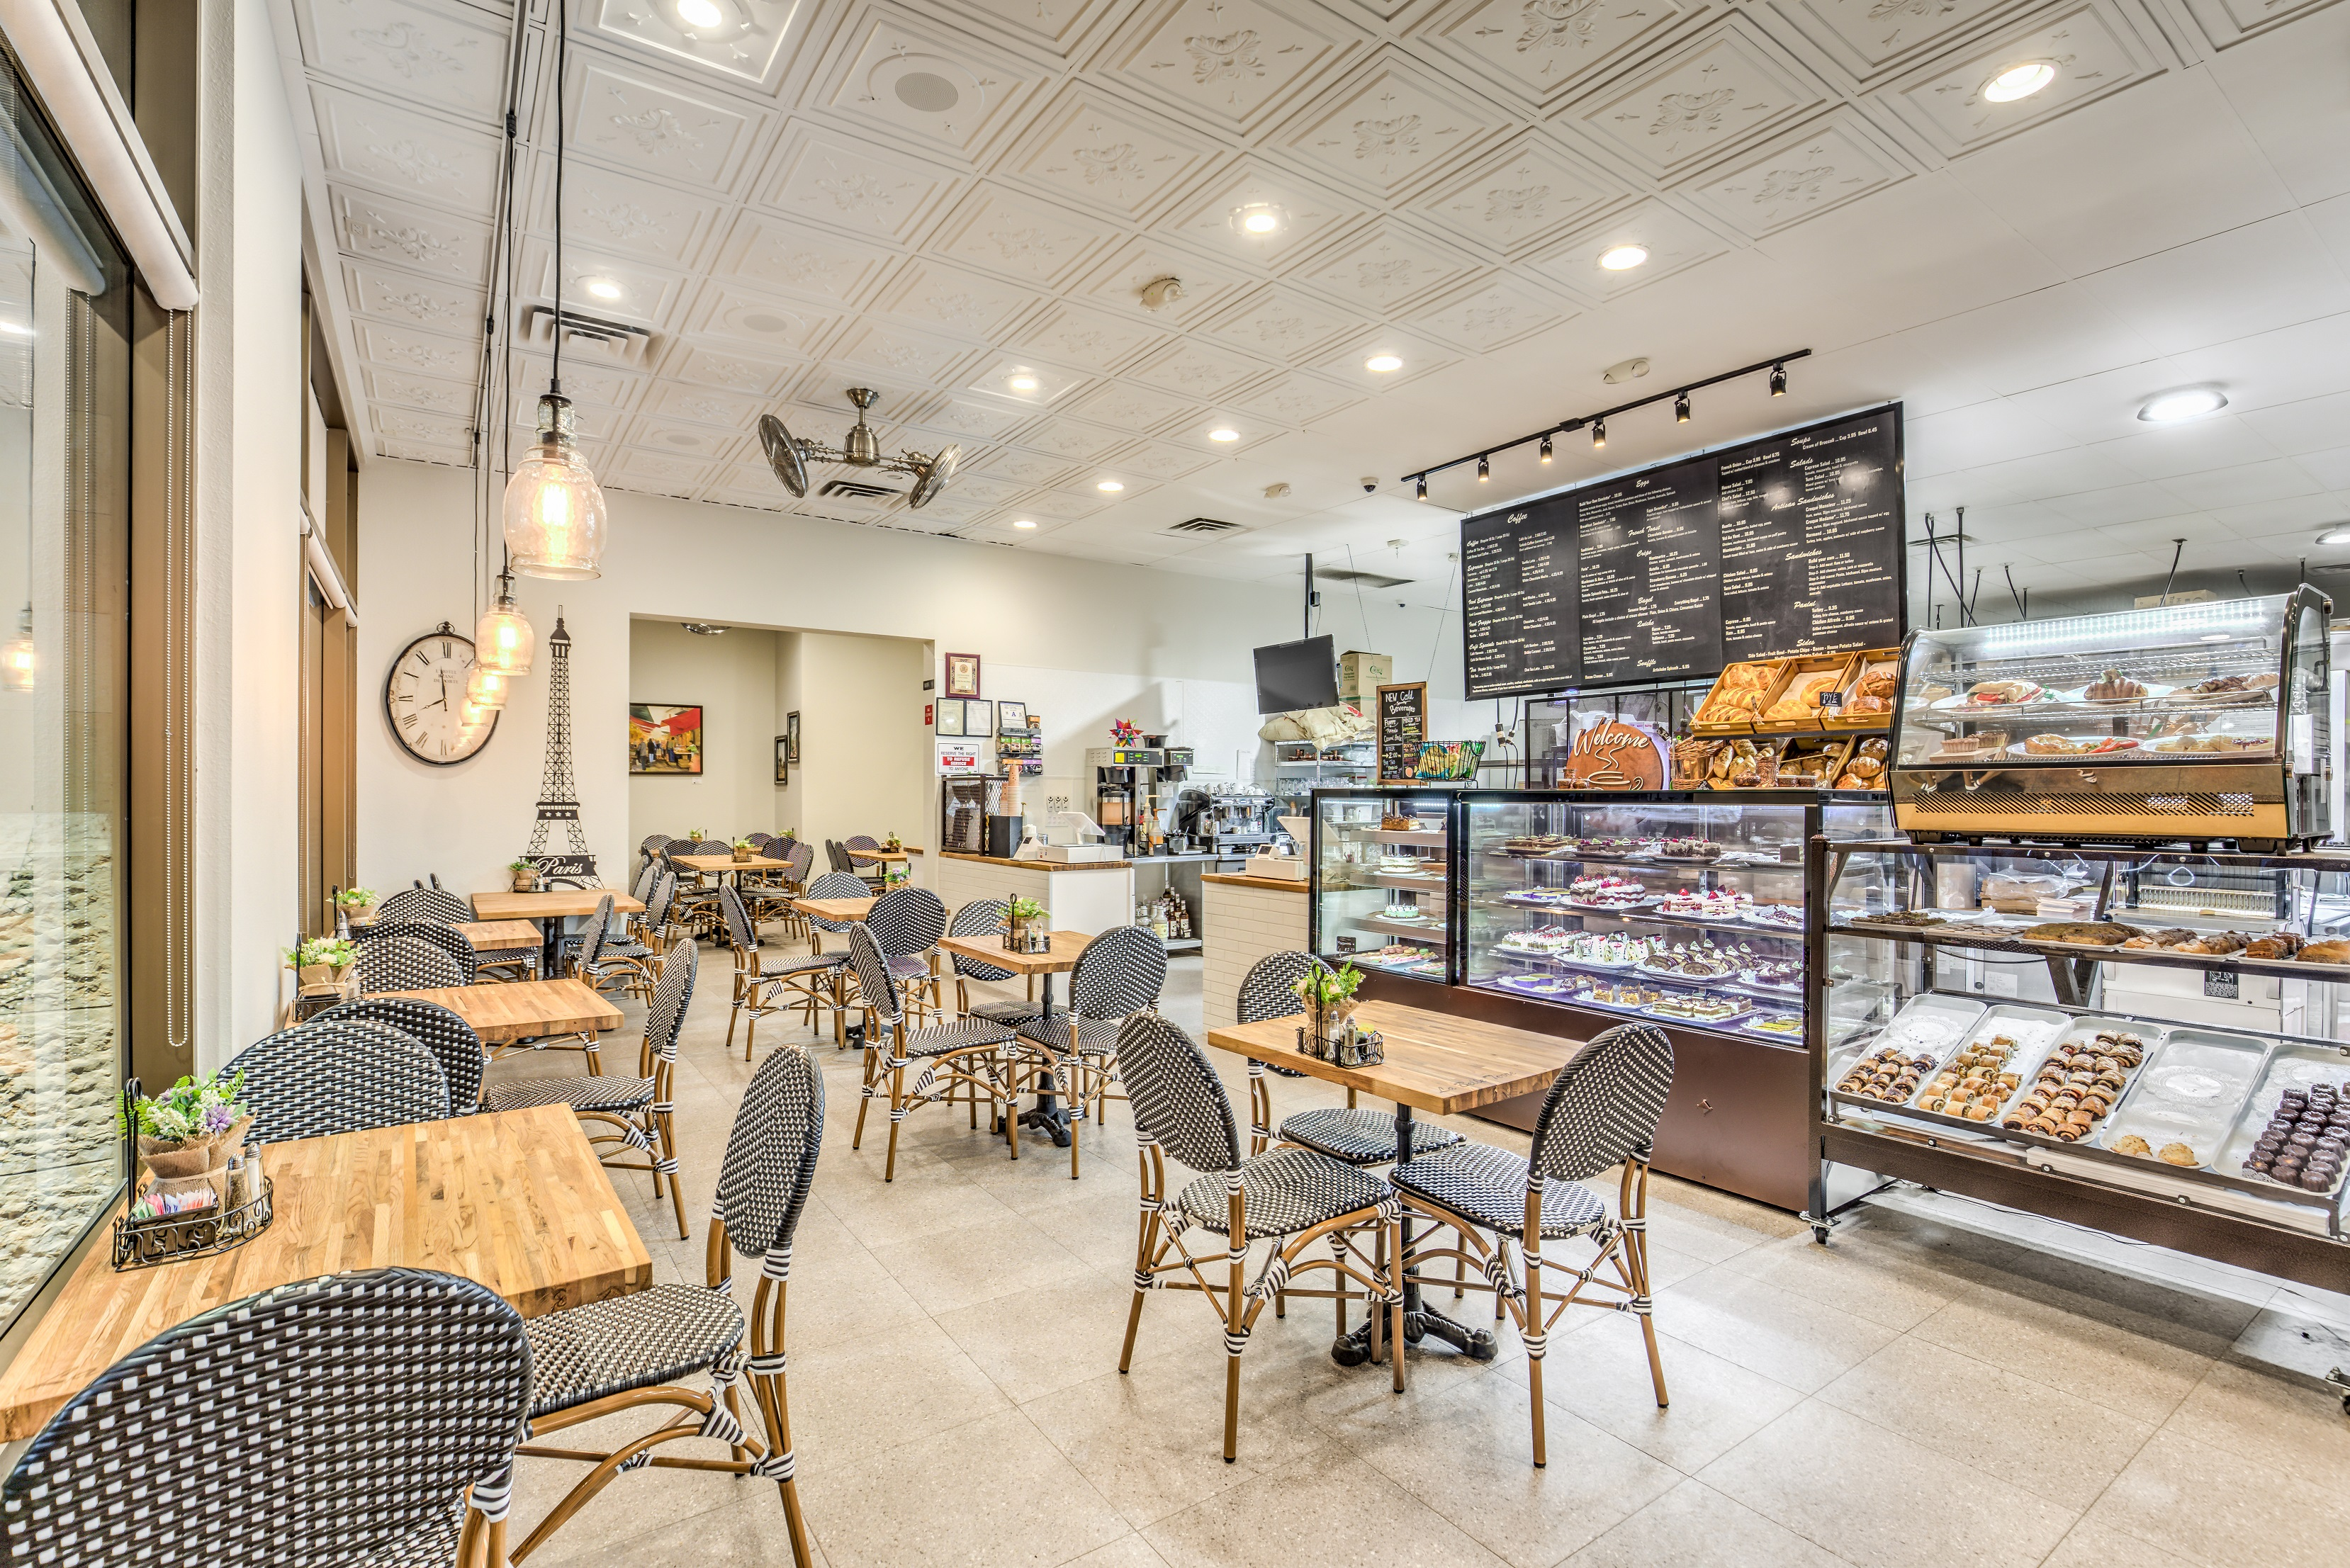 European Bakery Reveals an Airy Refresh